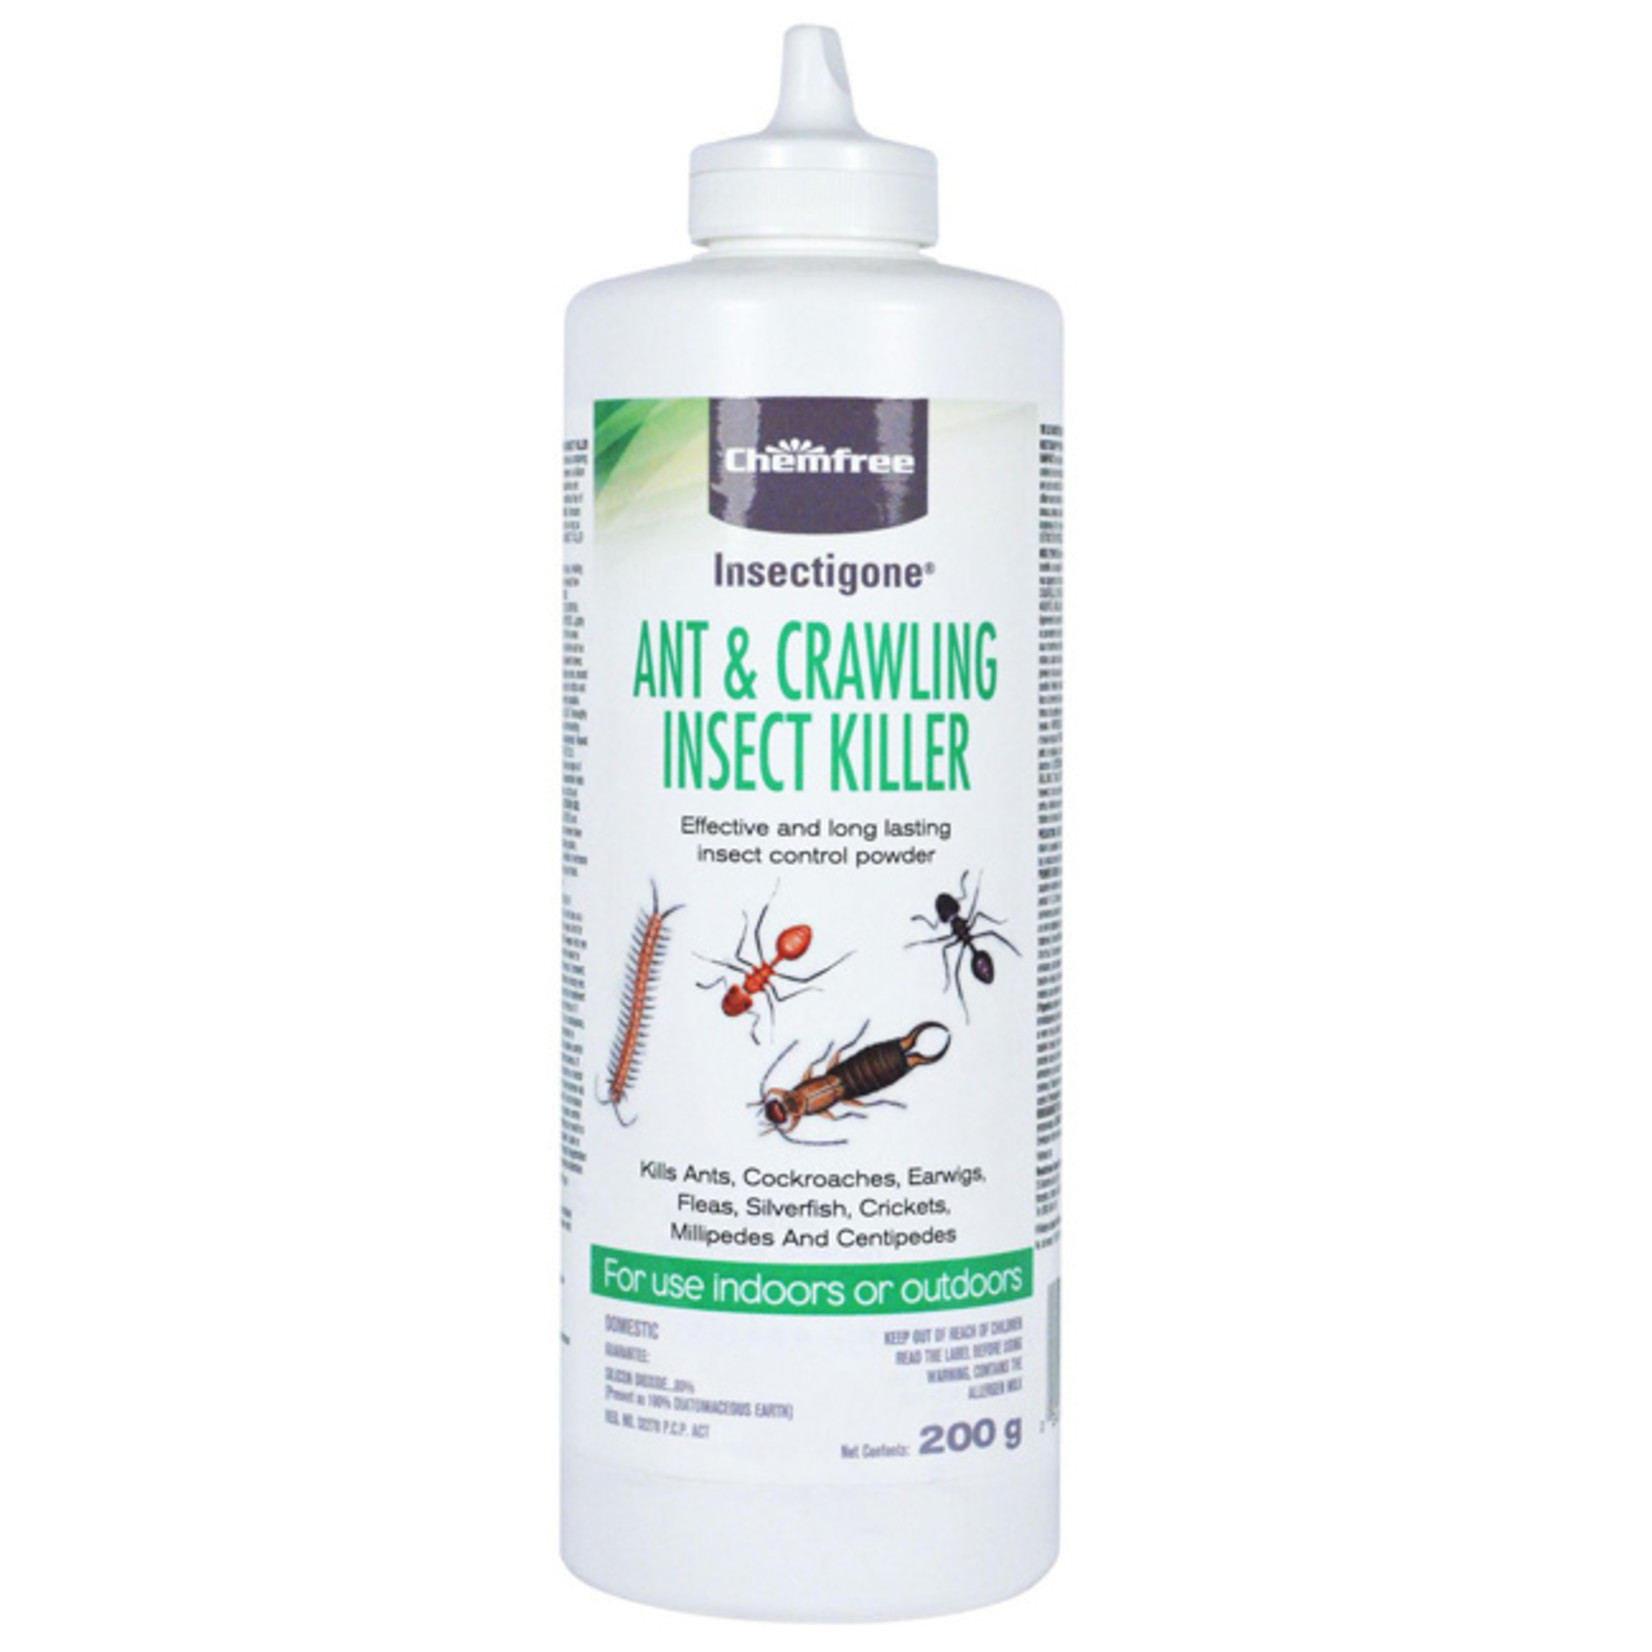 Chemfree Ant and Crawling Insect Killer (200g)